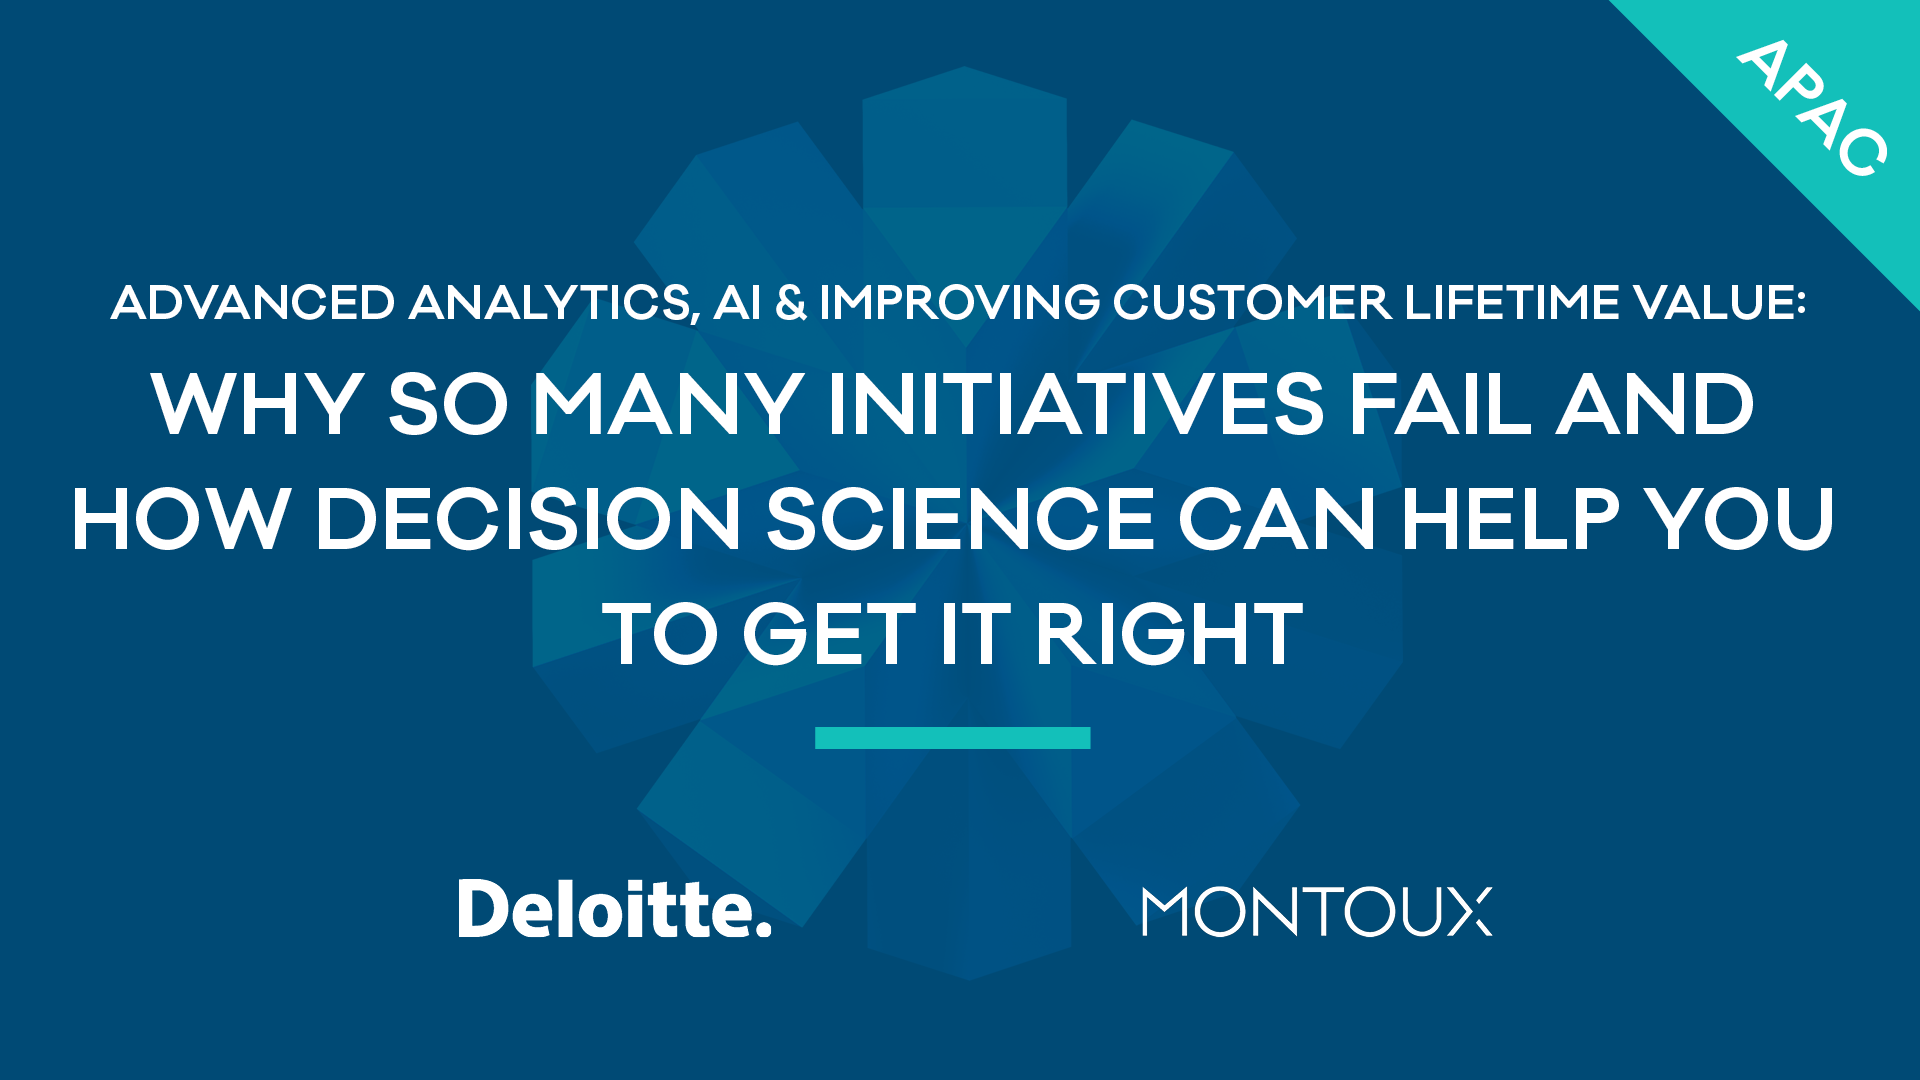 Advanced analytics, AI & improving customer lifetime value: Why so many initiatives fail and how Decision Science can help you to get it right